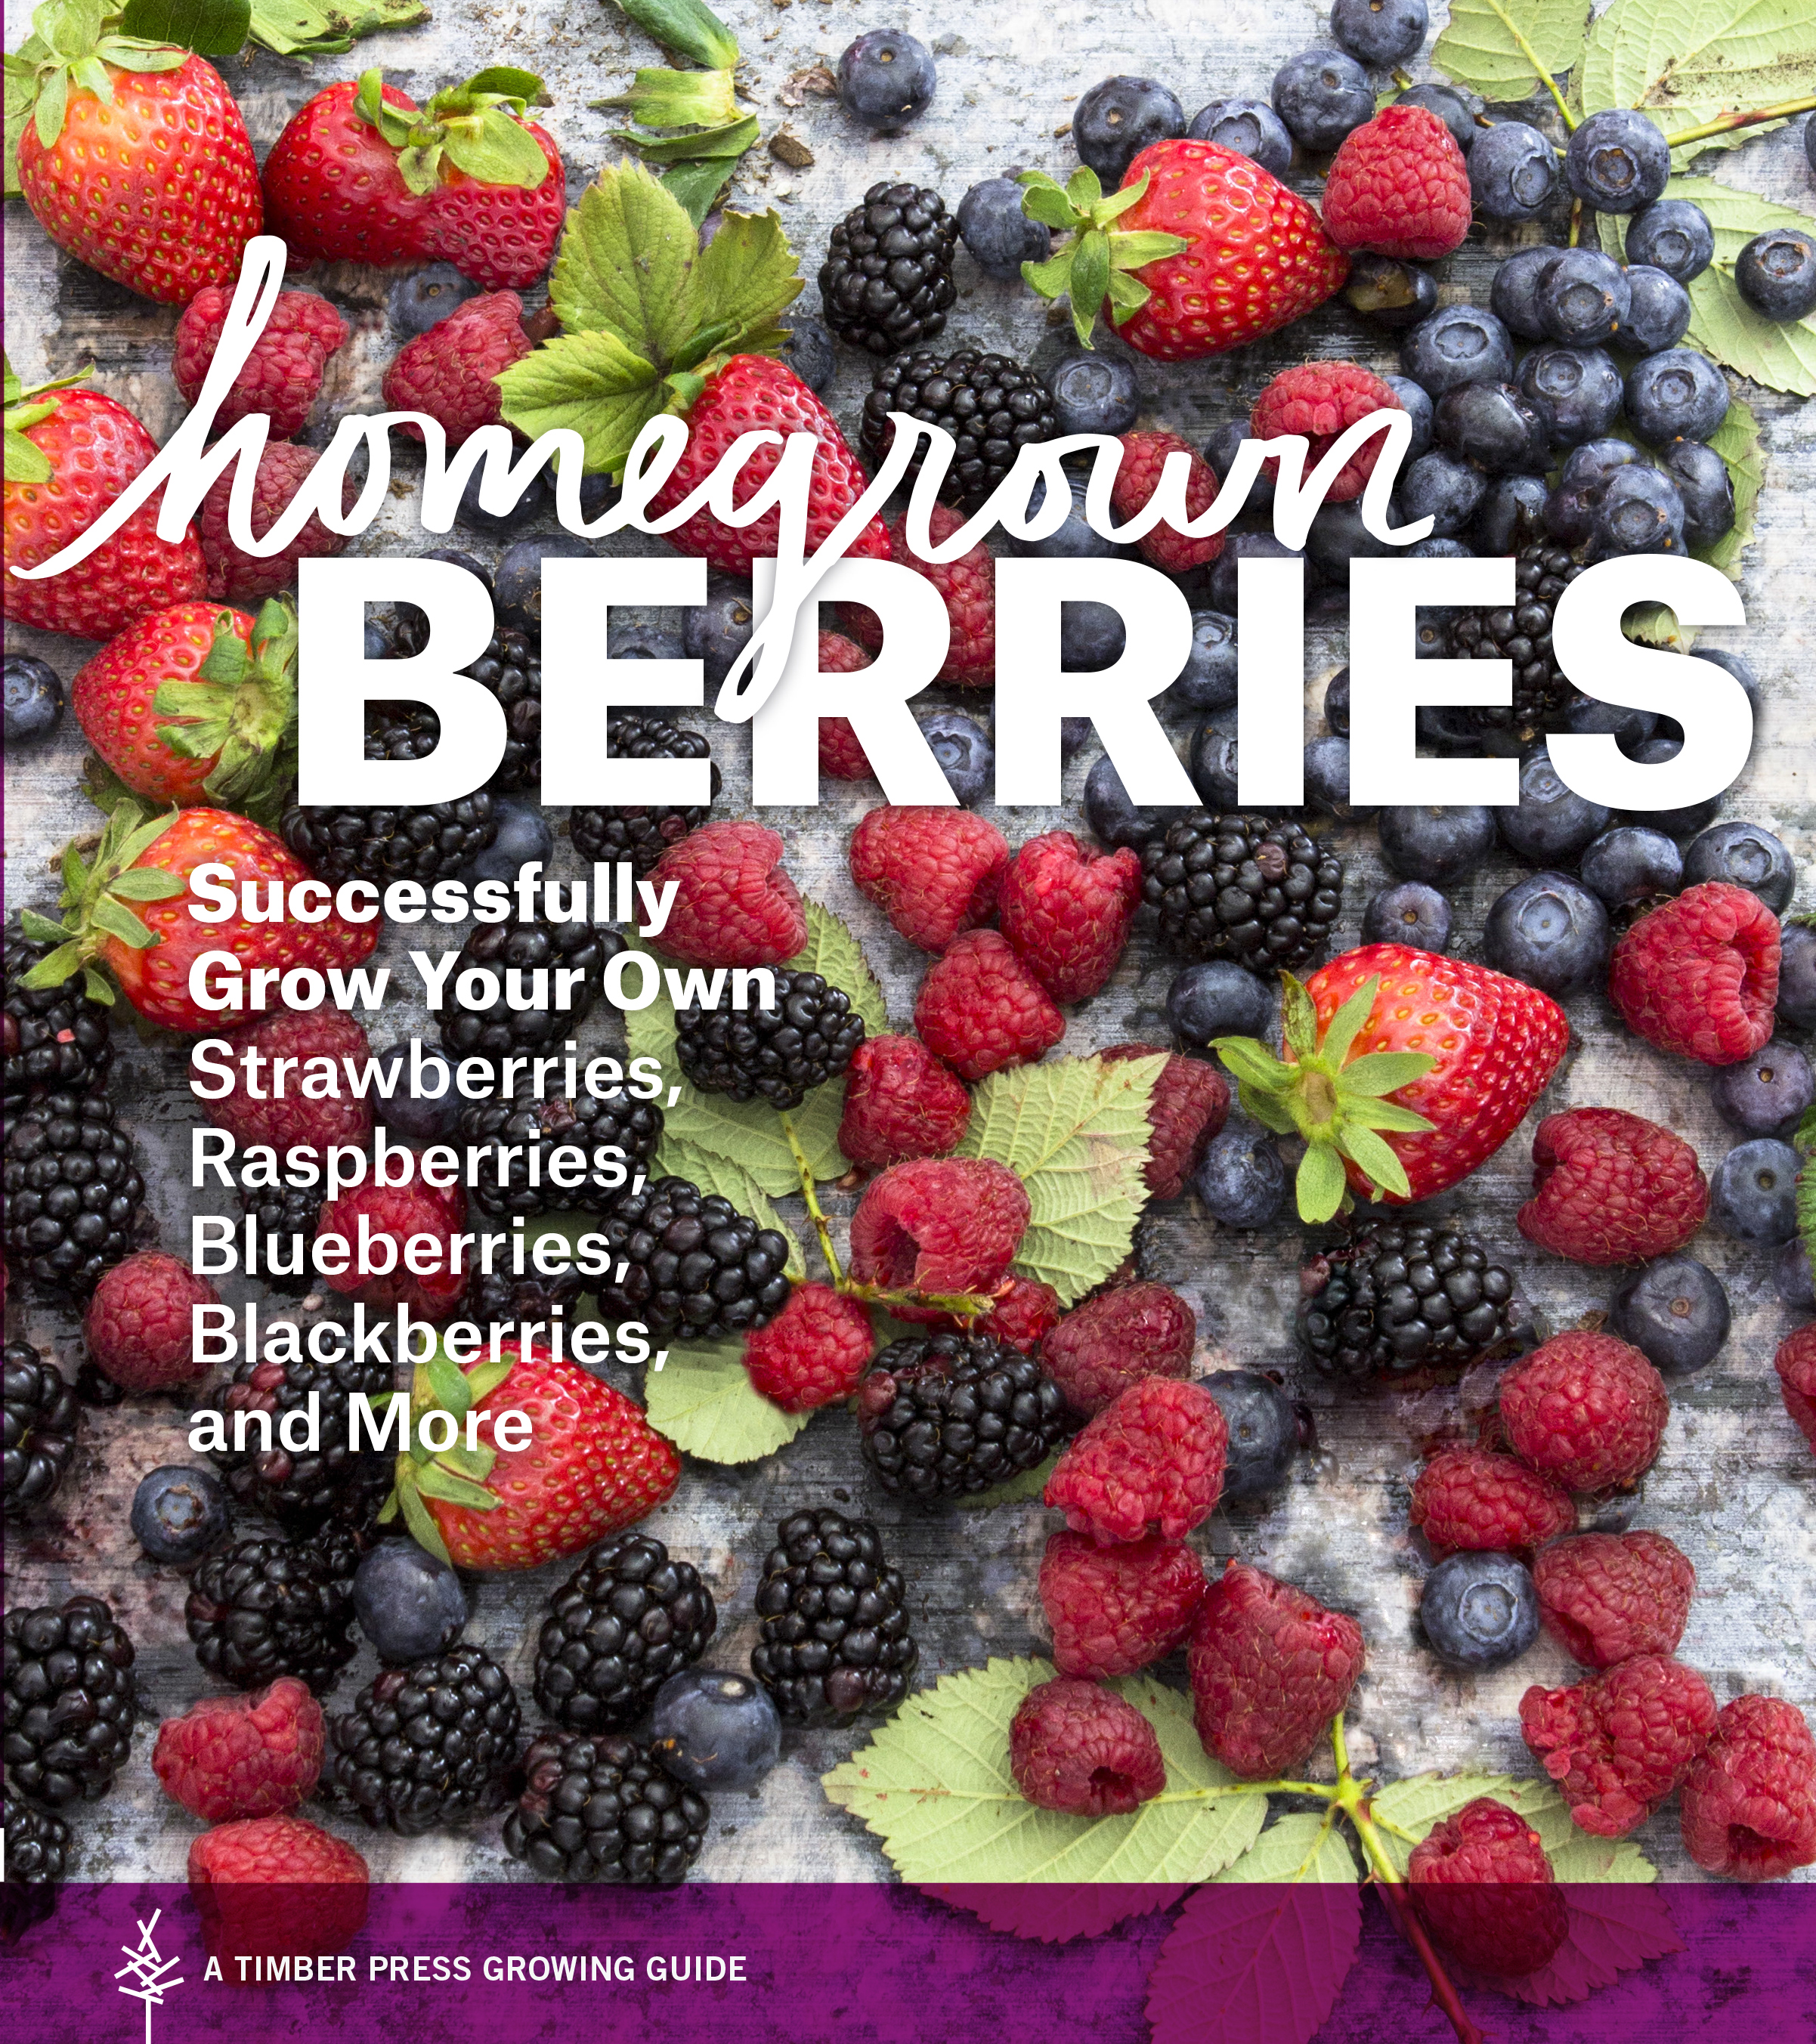 Cover Image of Homegrown Berries